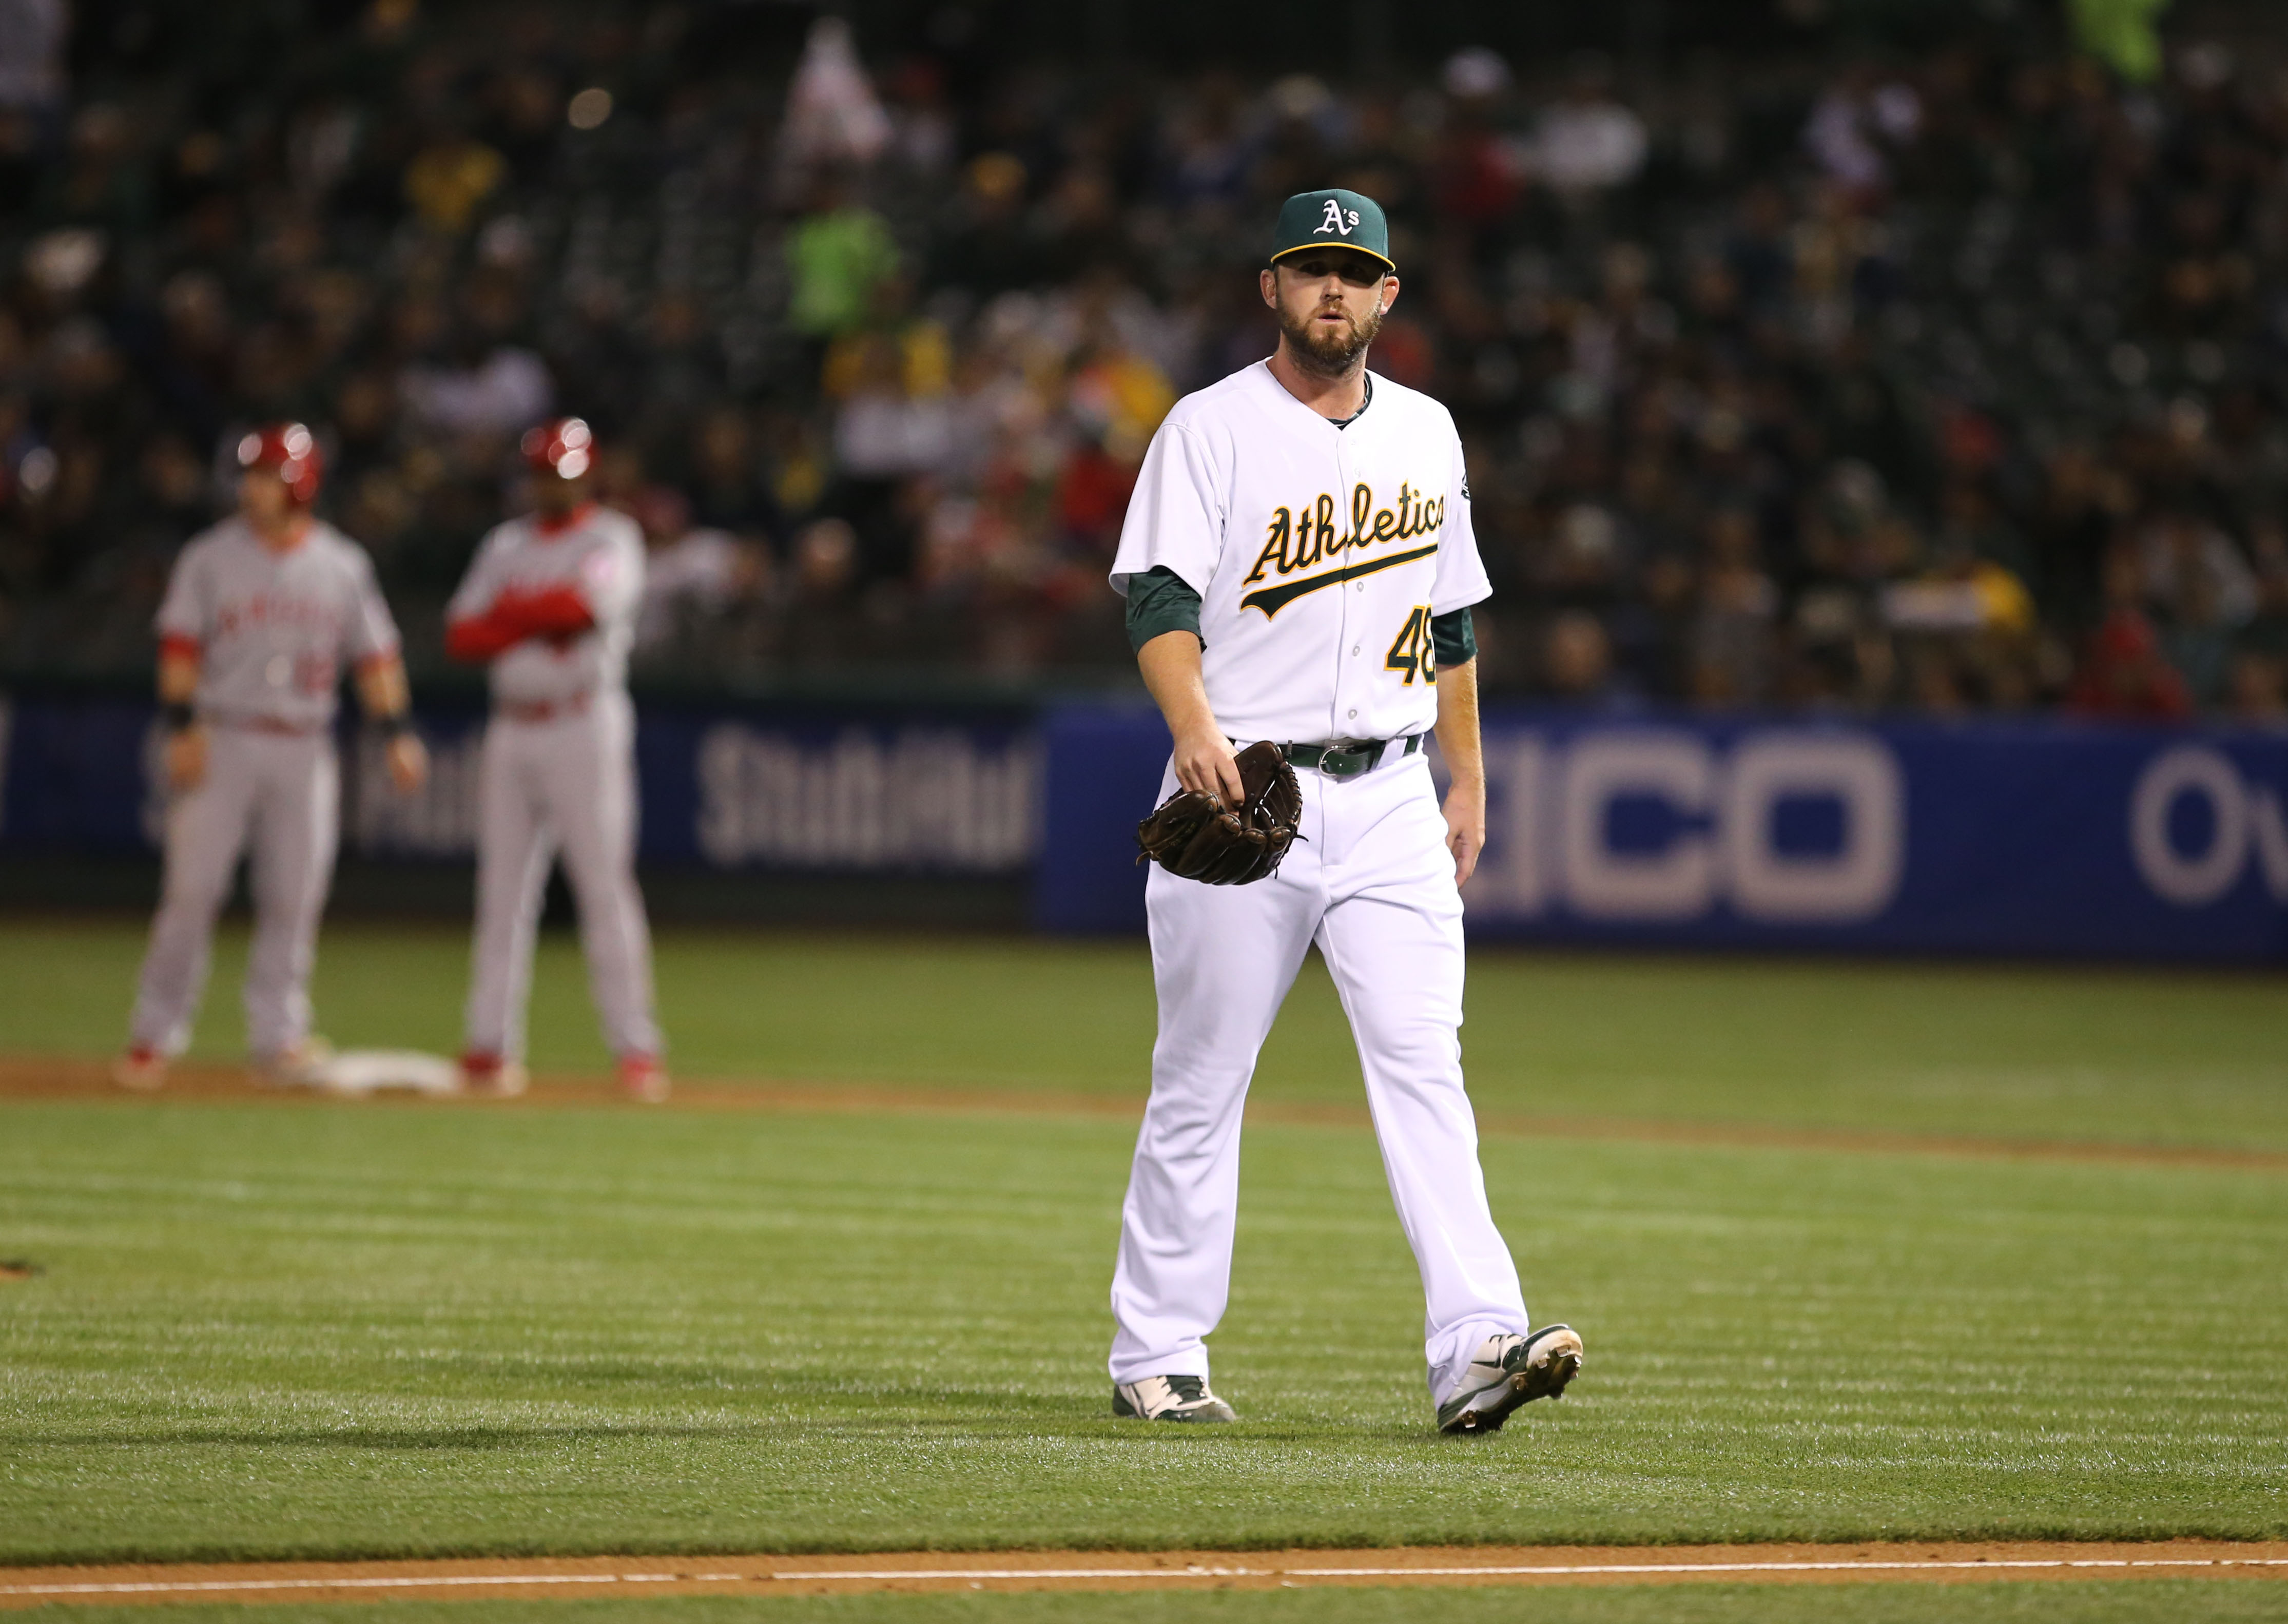 Ryan Cook exits after allowing an RBI single in April.